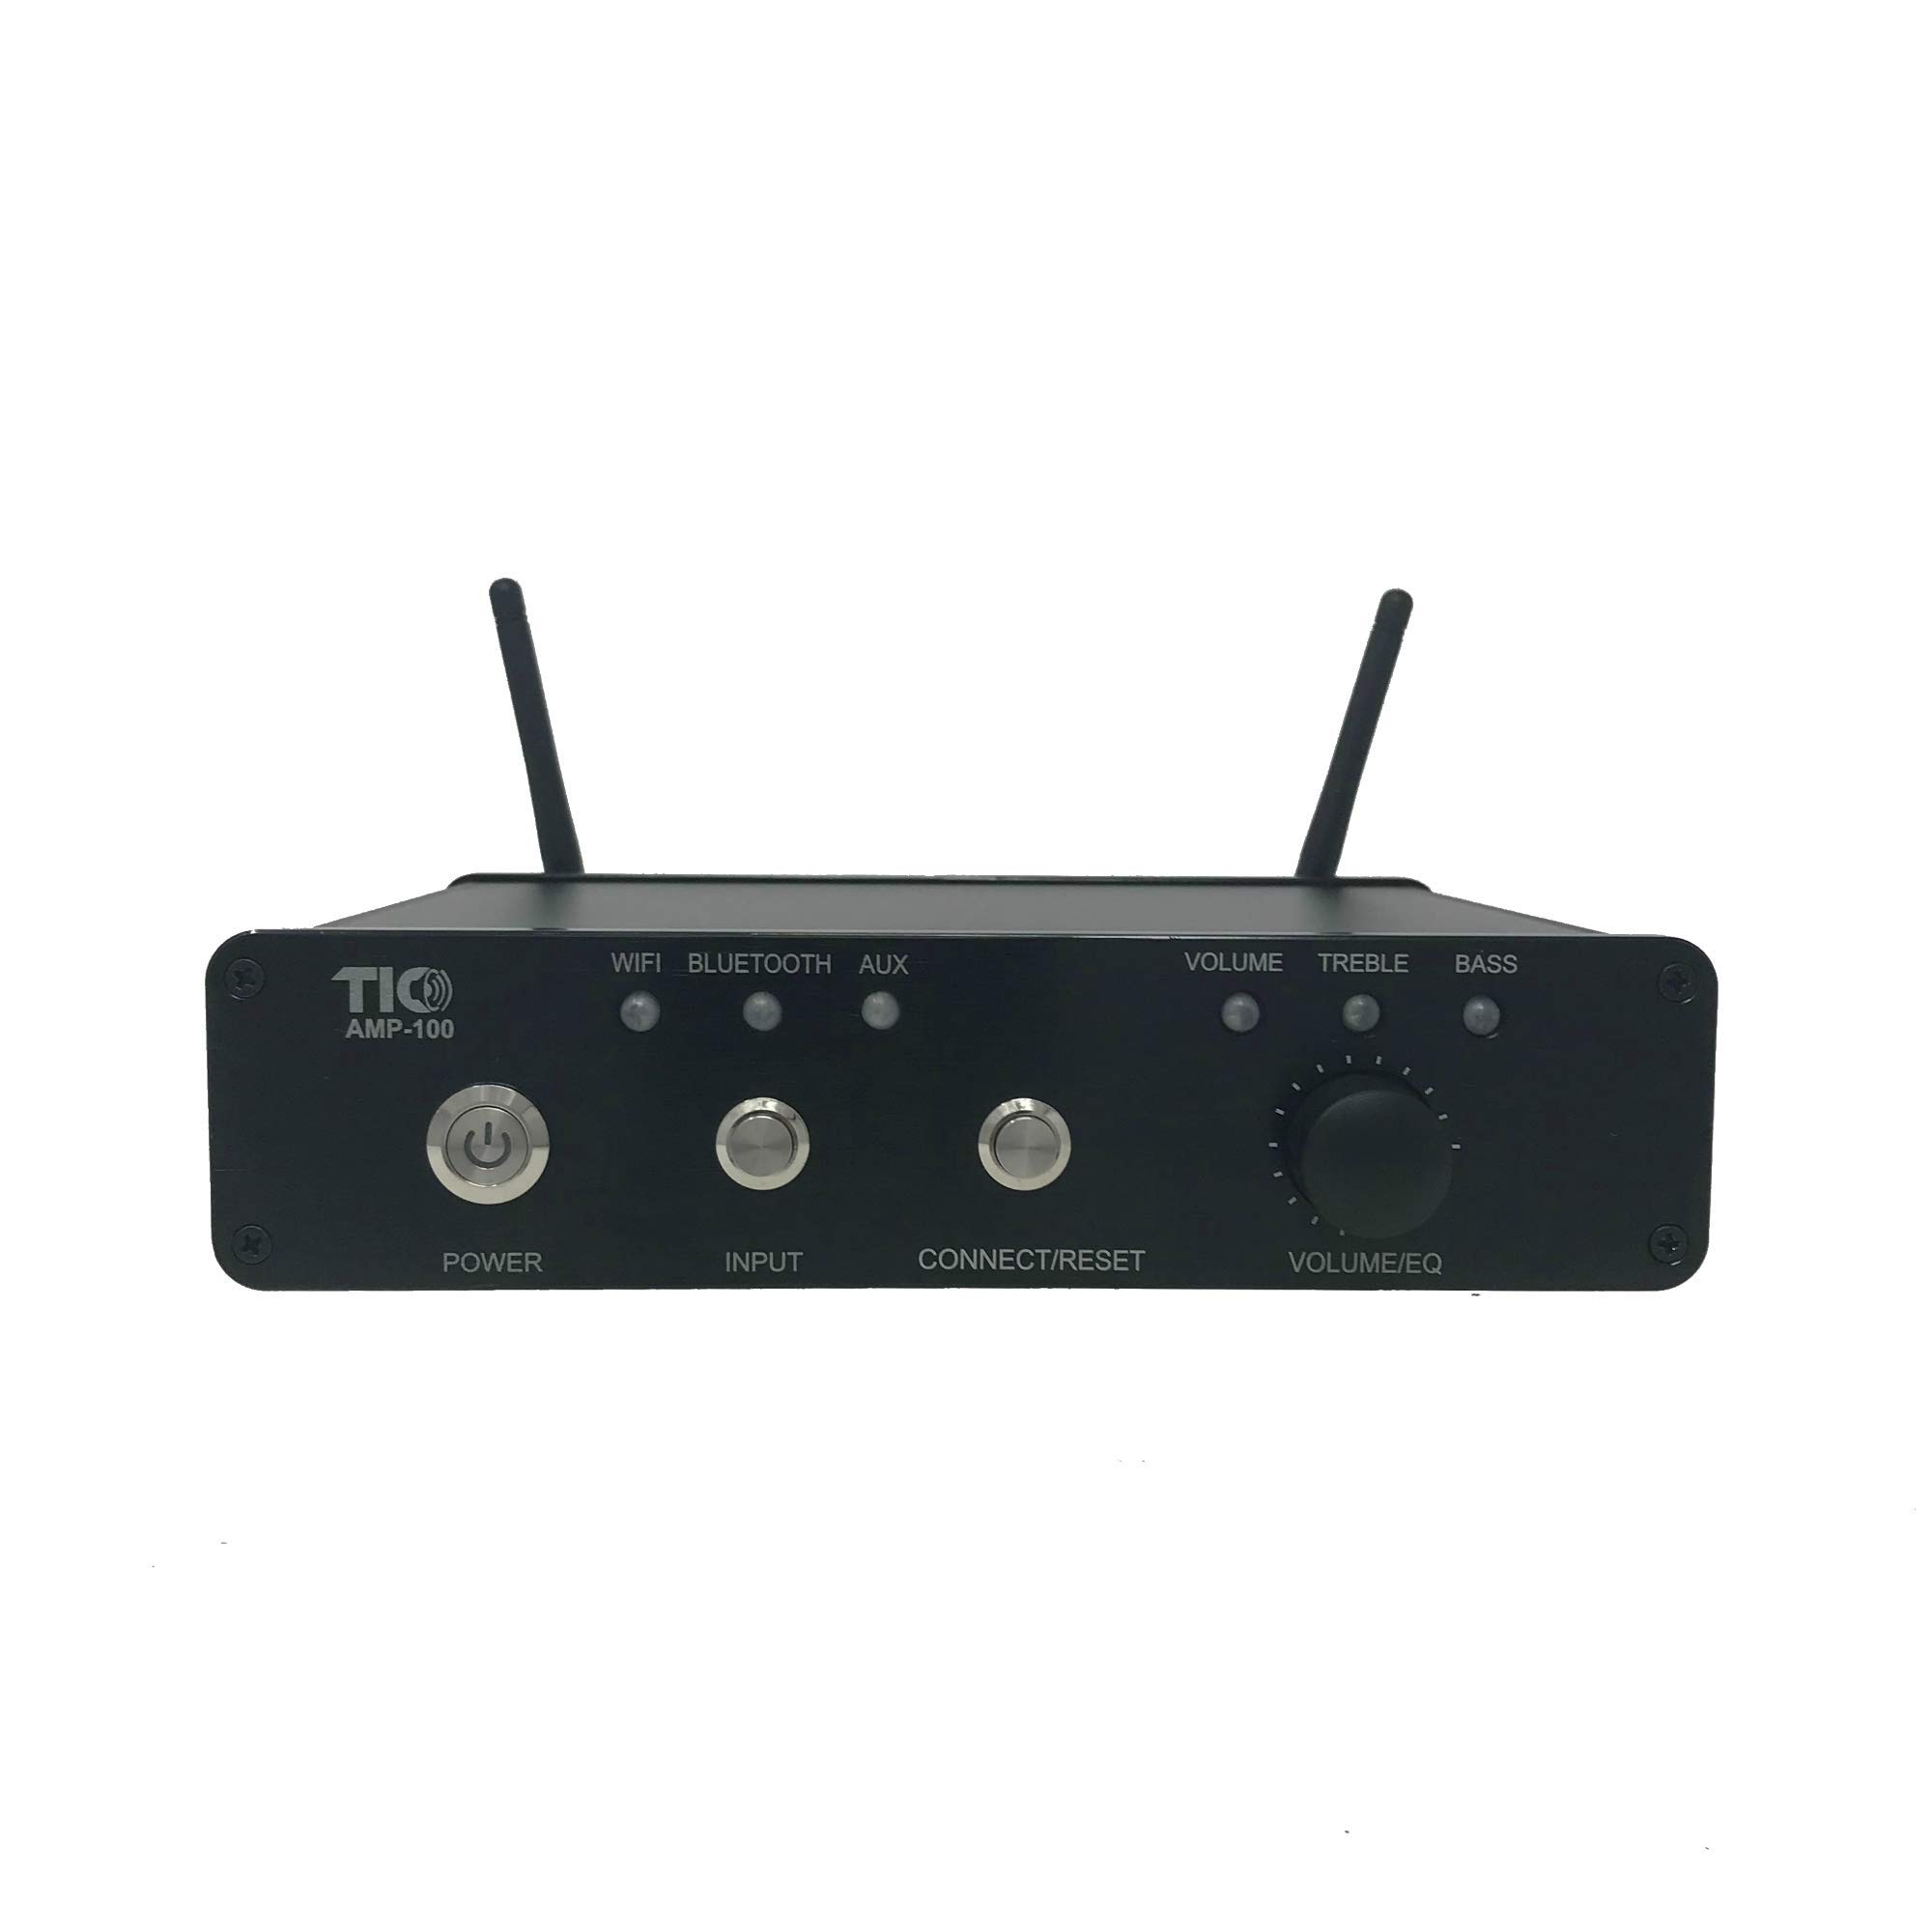 TIC AMP100 200W 4-Channel Indoor-Outdoor WiFi-Bluetooth Multiroom Amplifier with AirPlay